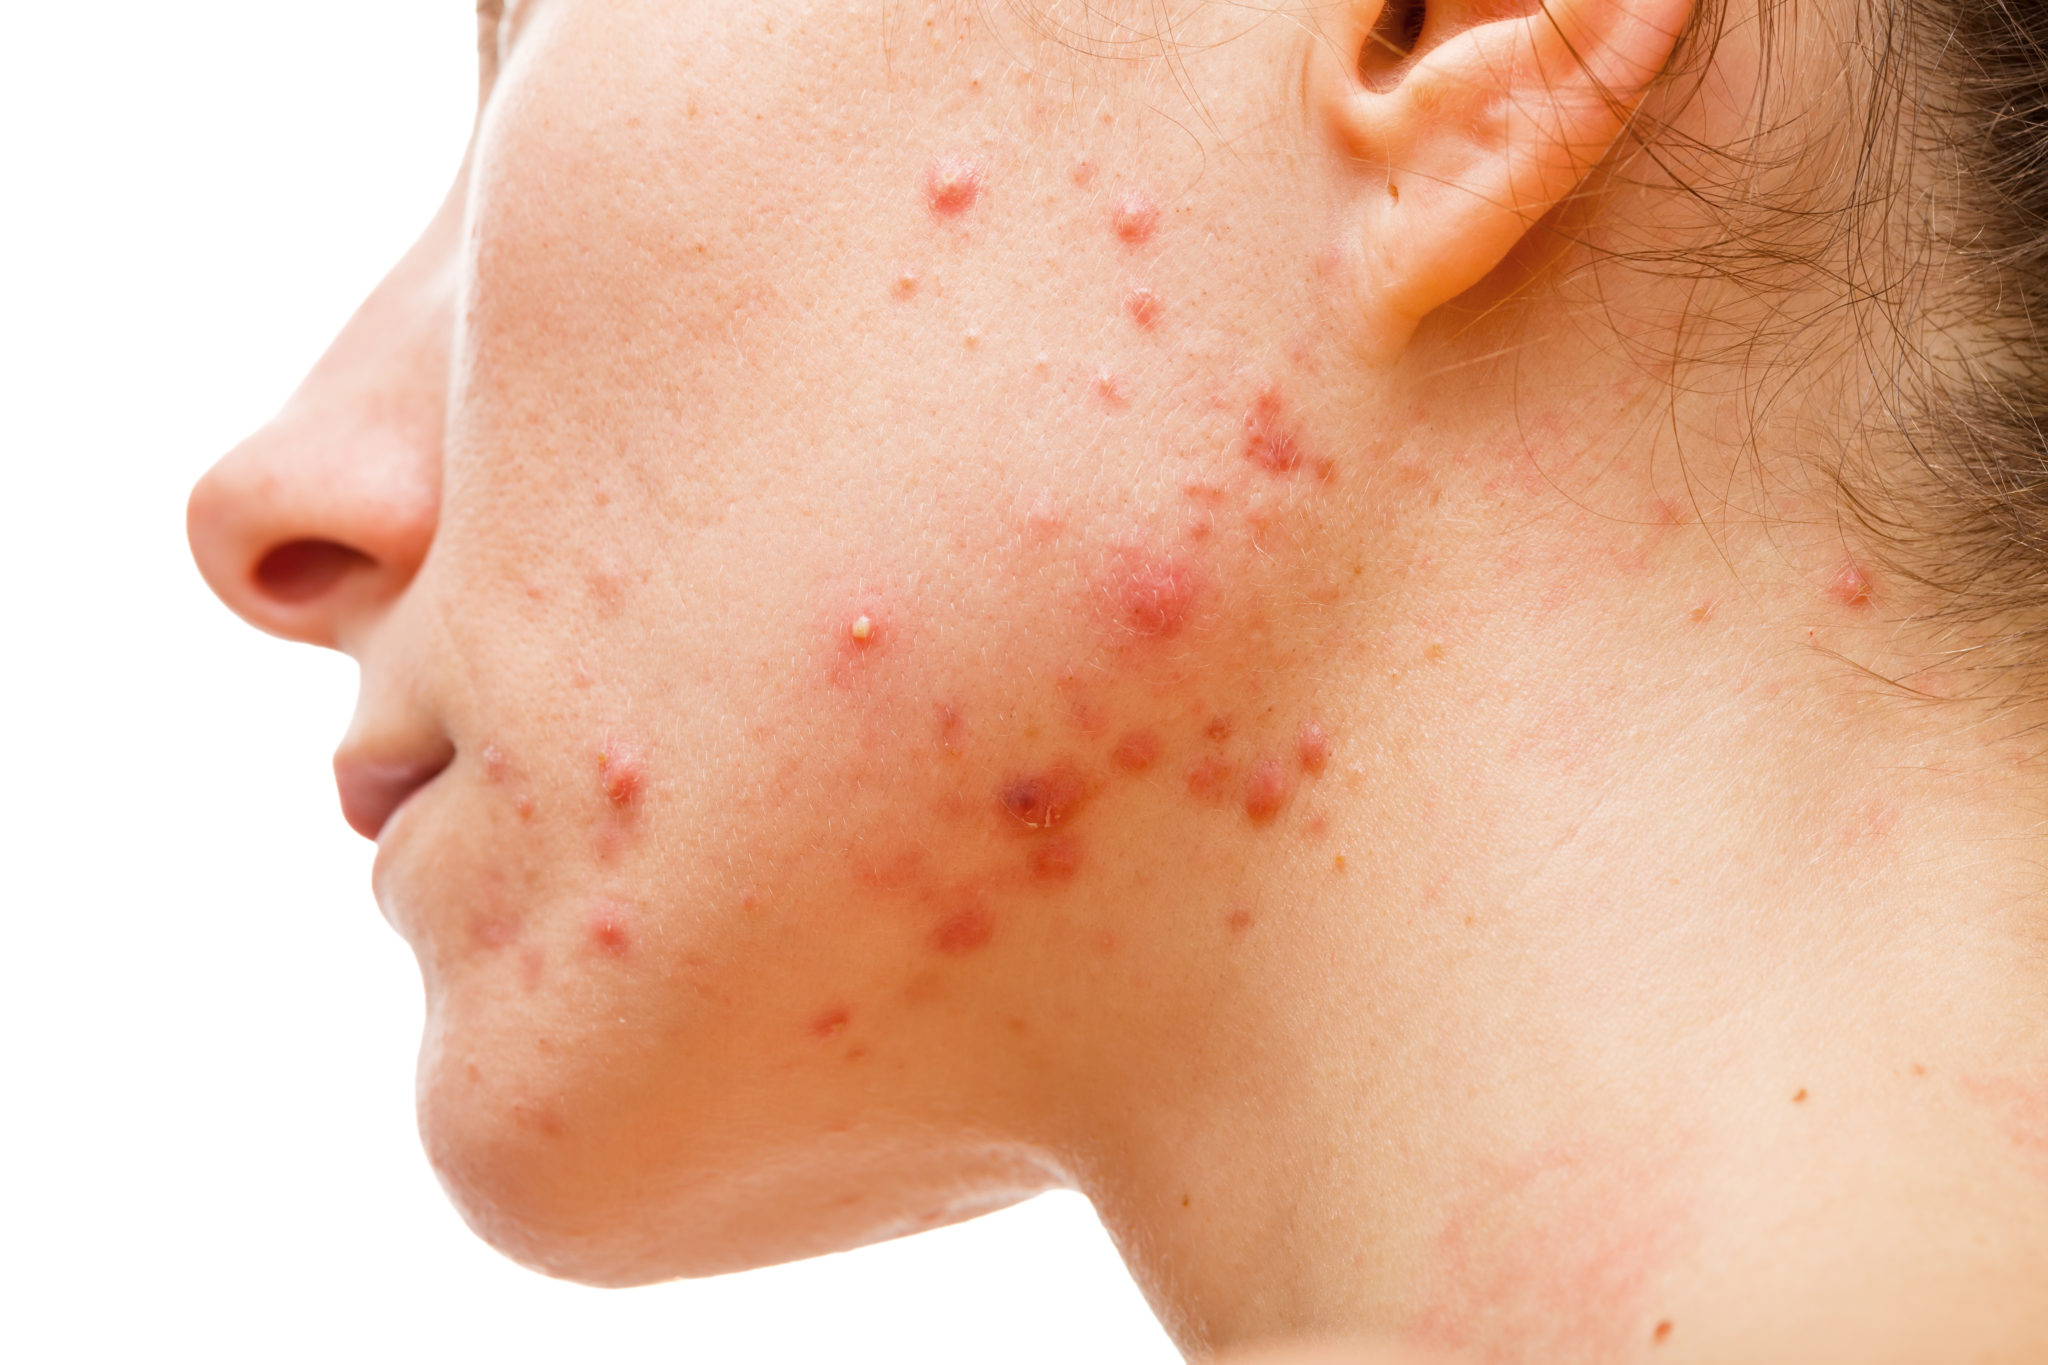 inflammatory acne on jaw line